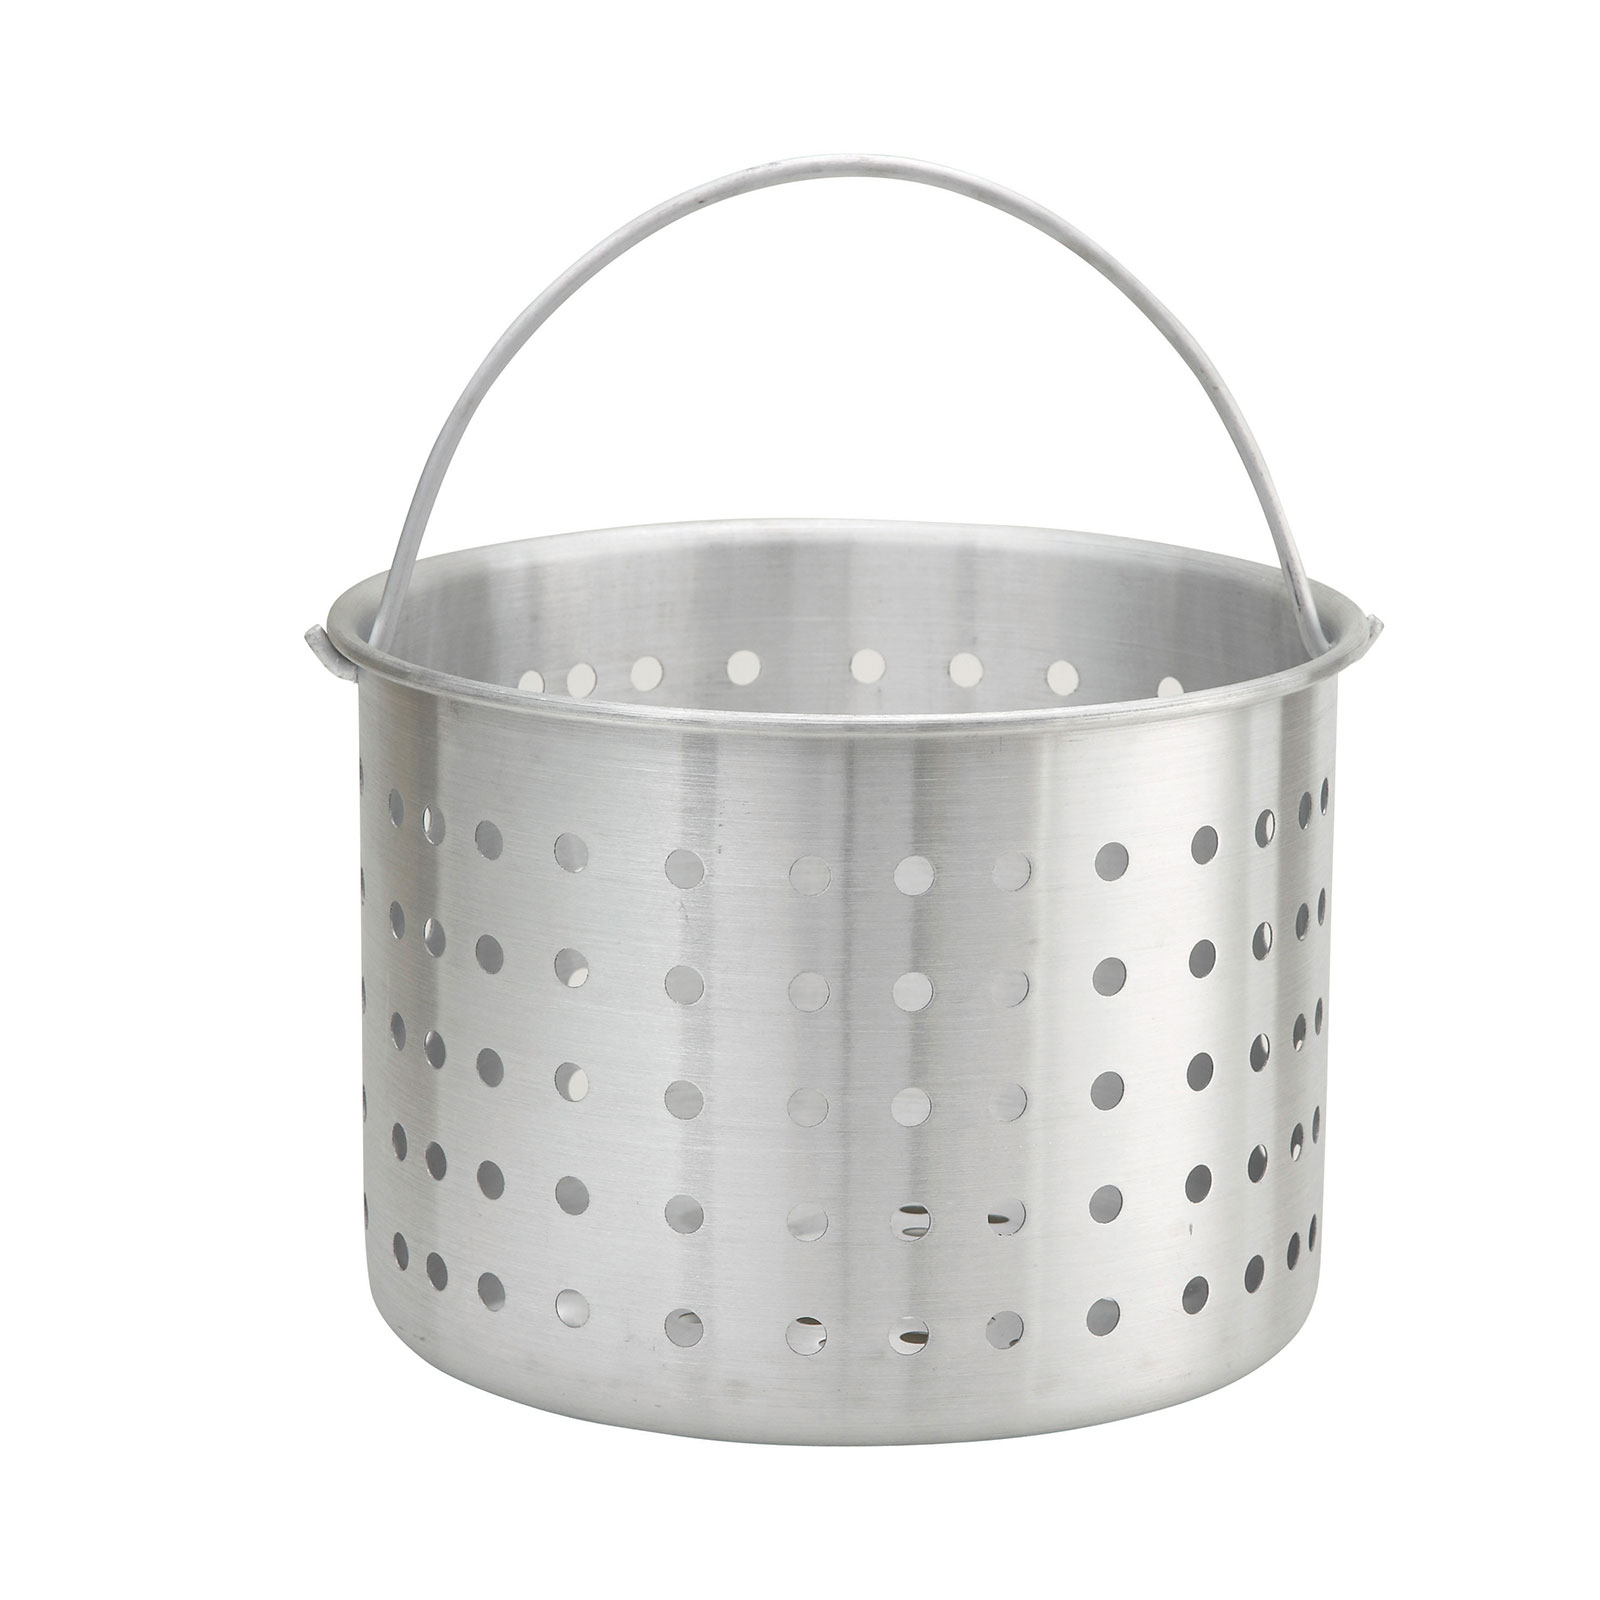 Winco ALSB-80 stock / steam pot, steamer basket